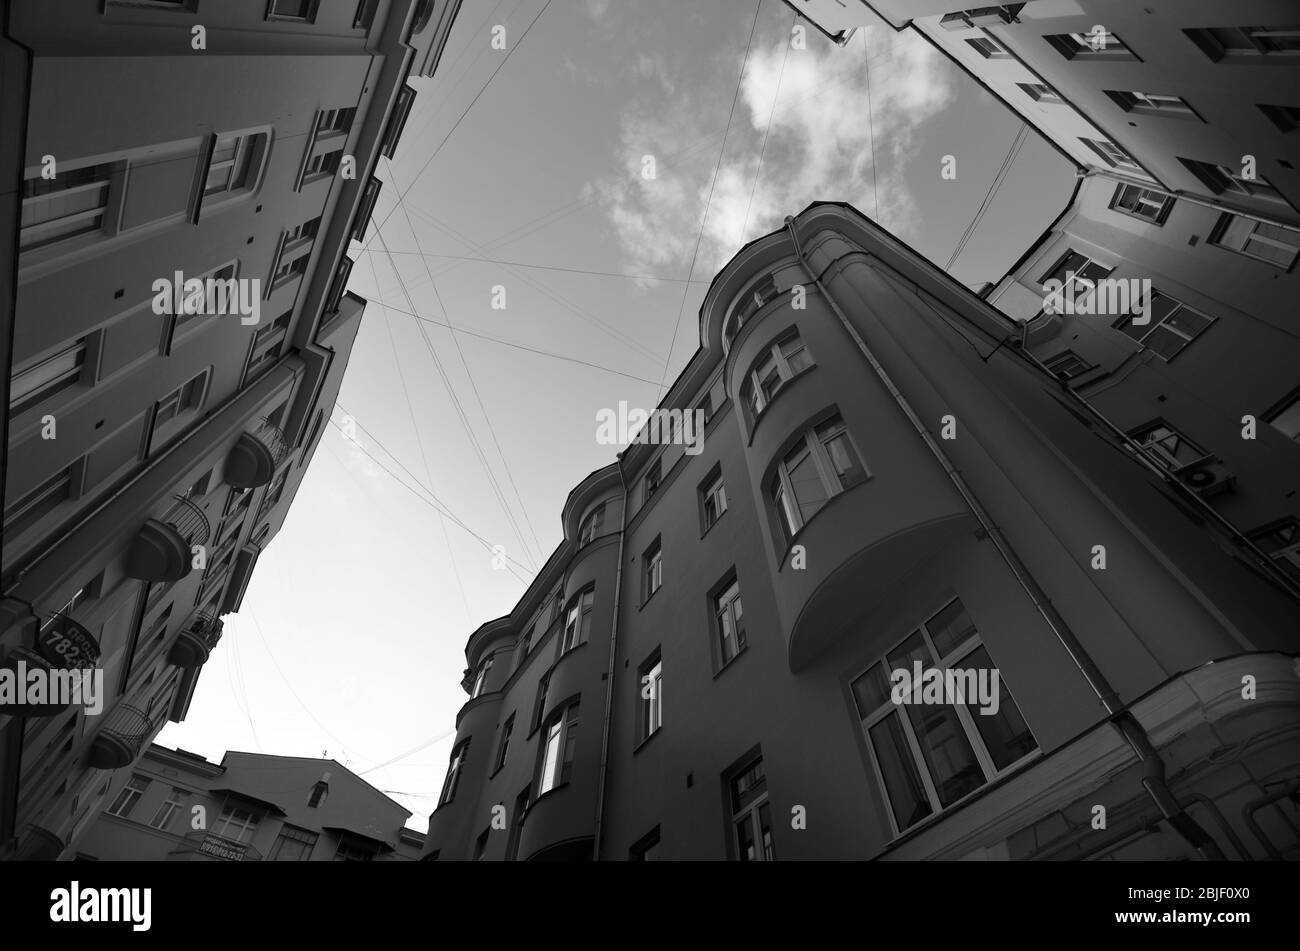 Moscow street view, Russia Stock Photo